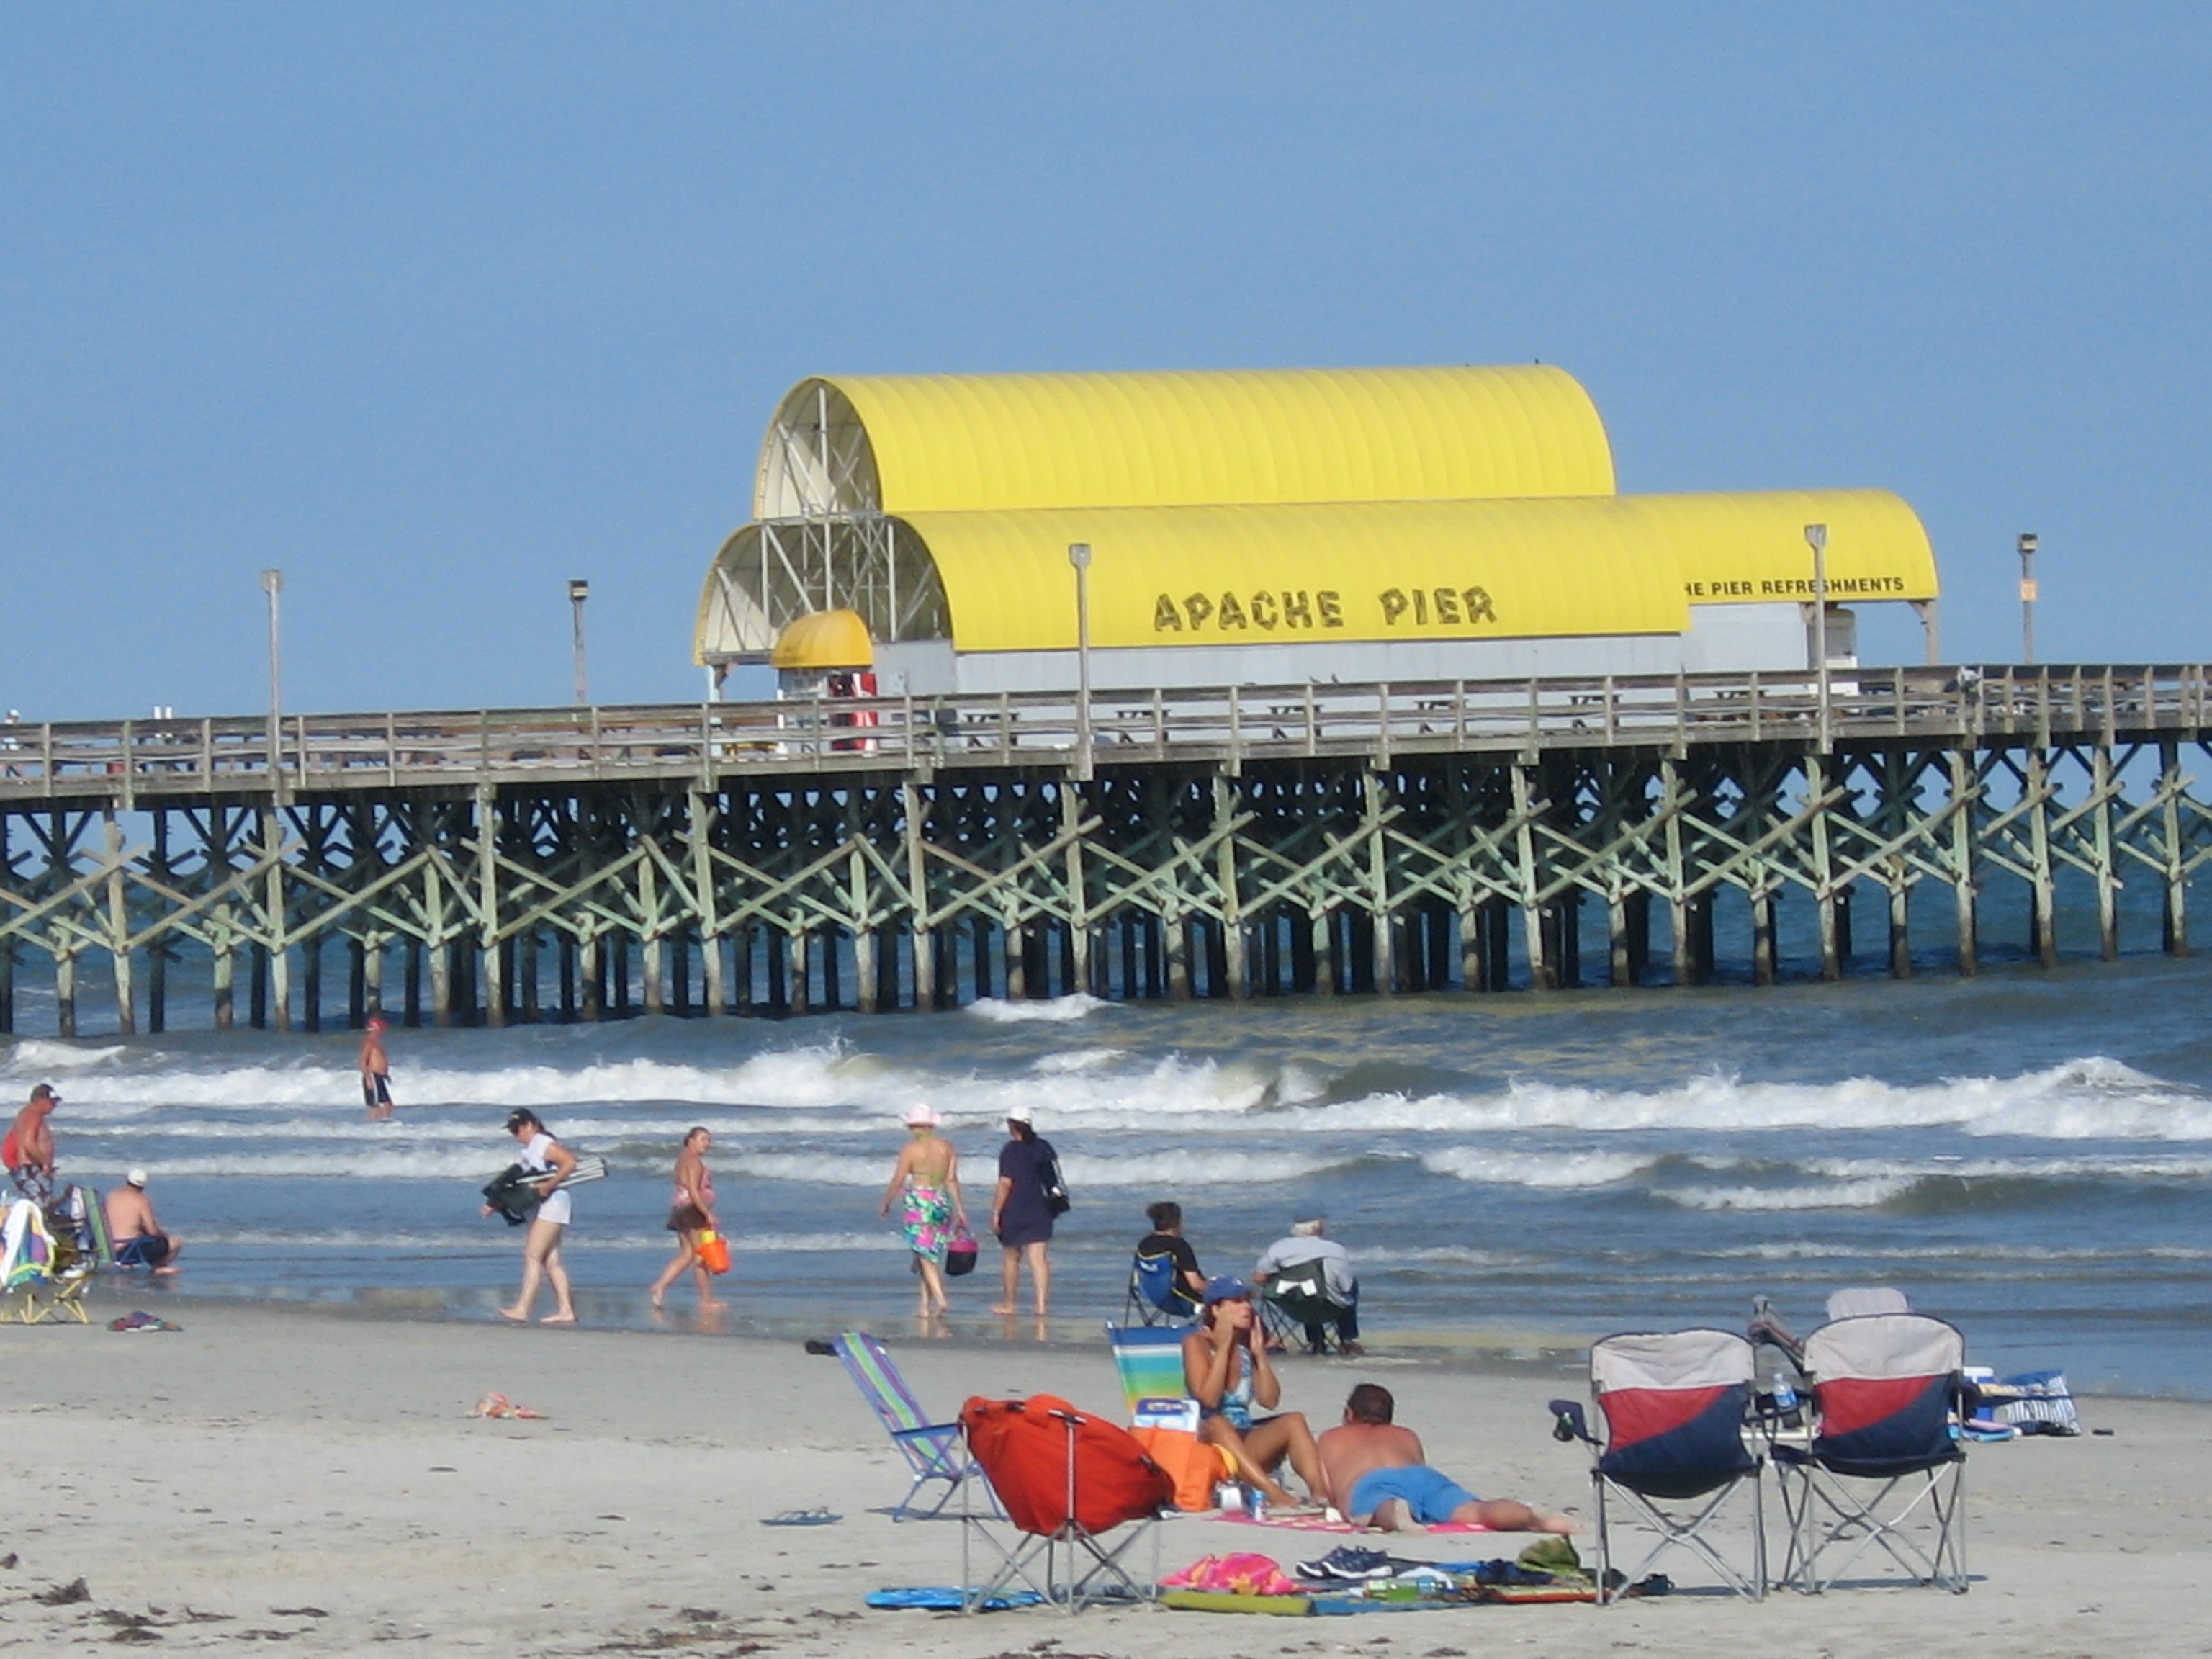 Free Photos Usa South Carolina Myrtle Beach Apache Pier